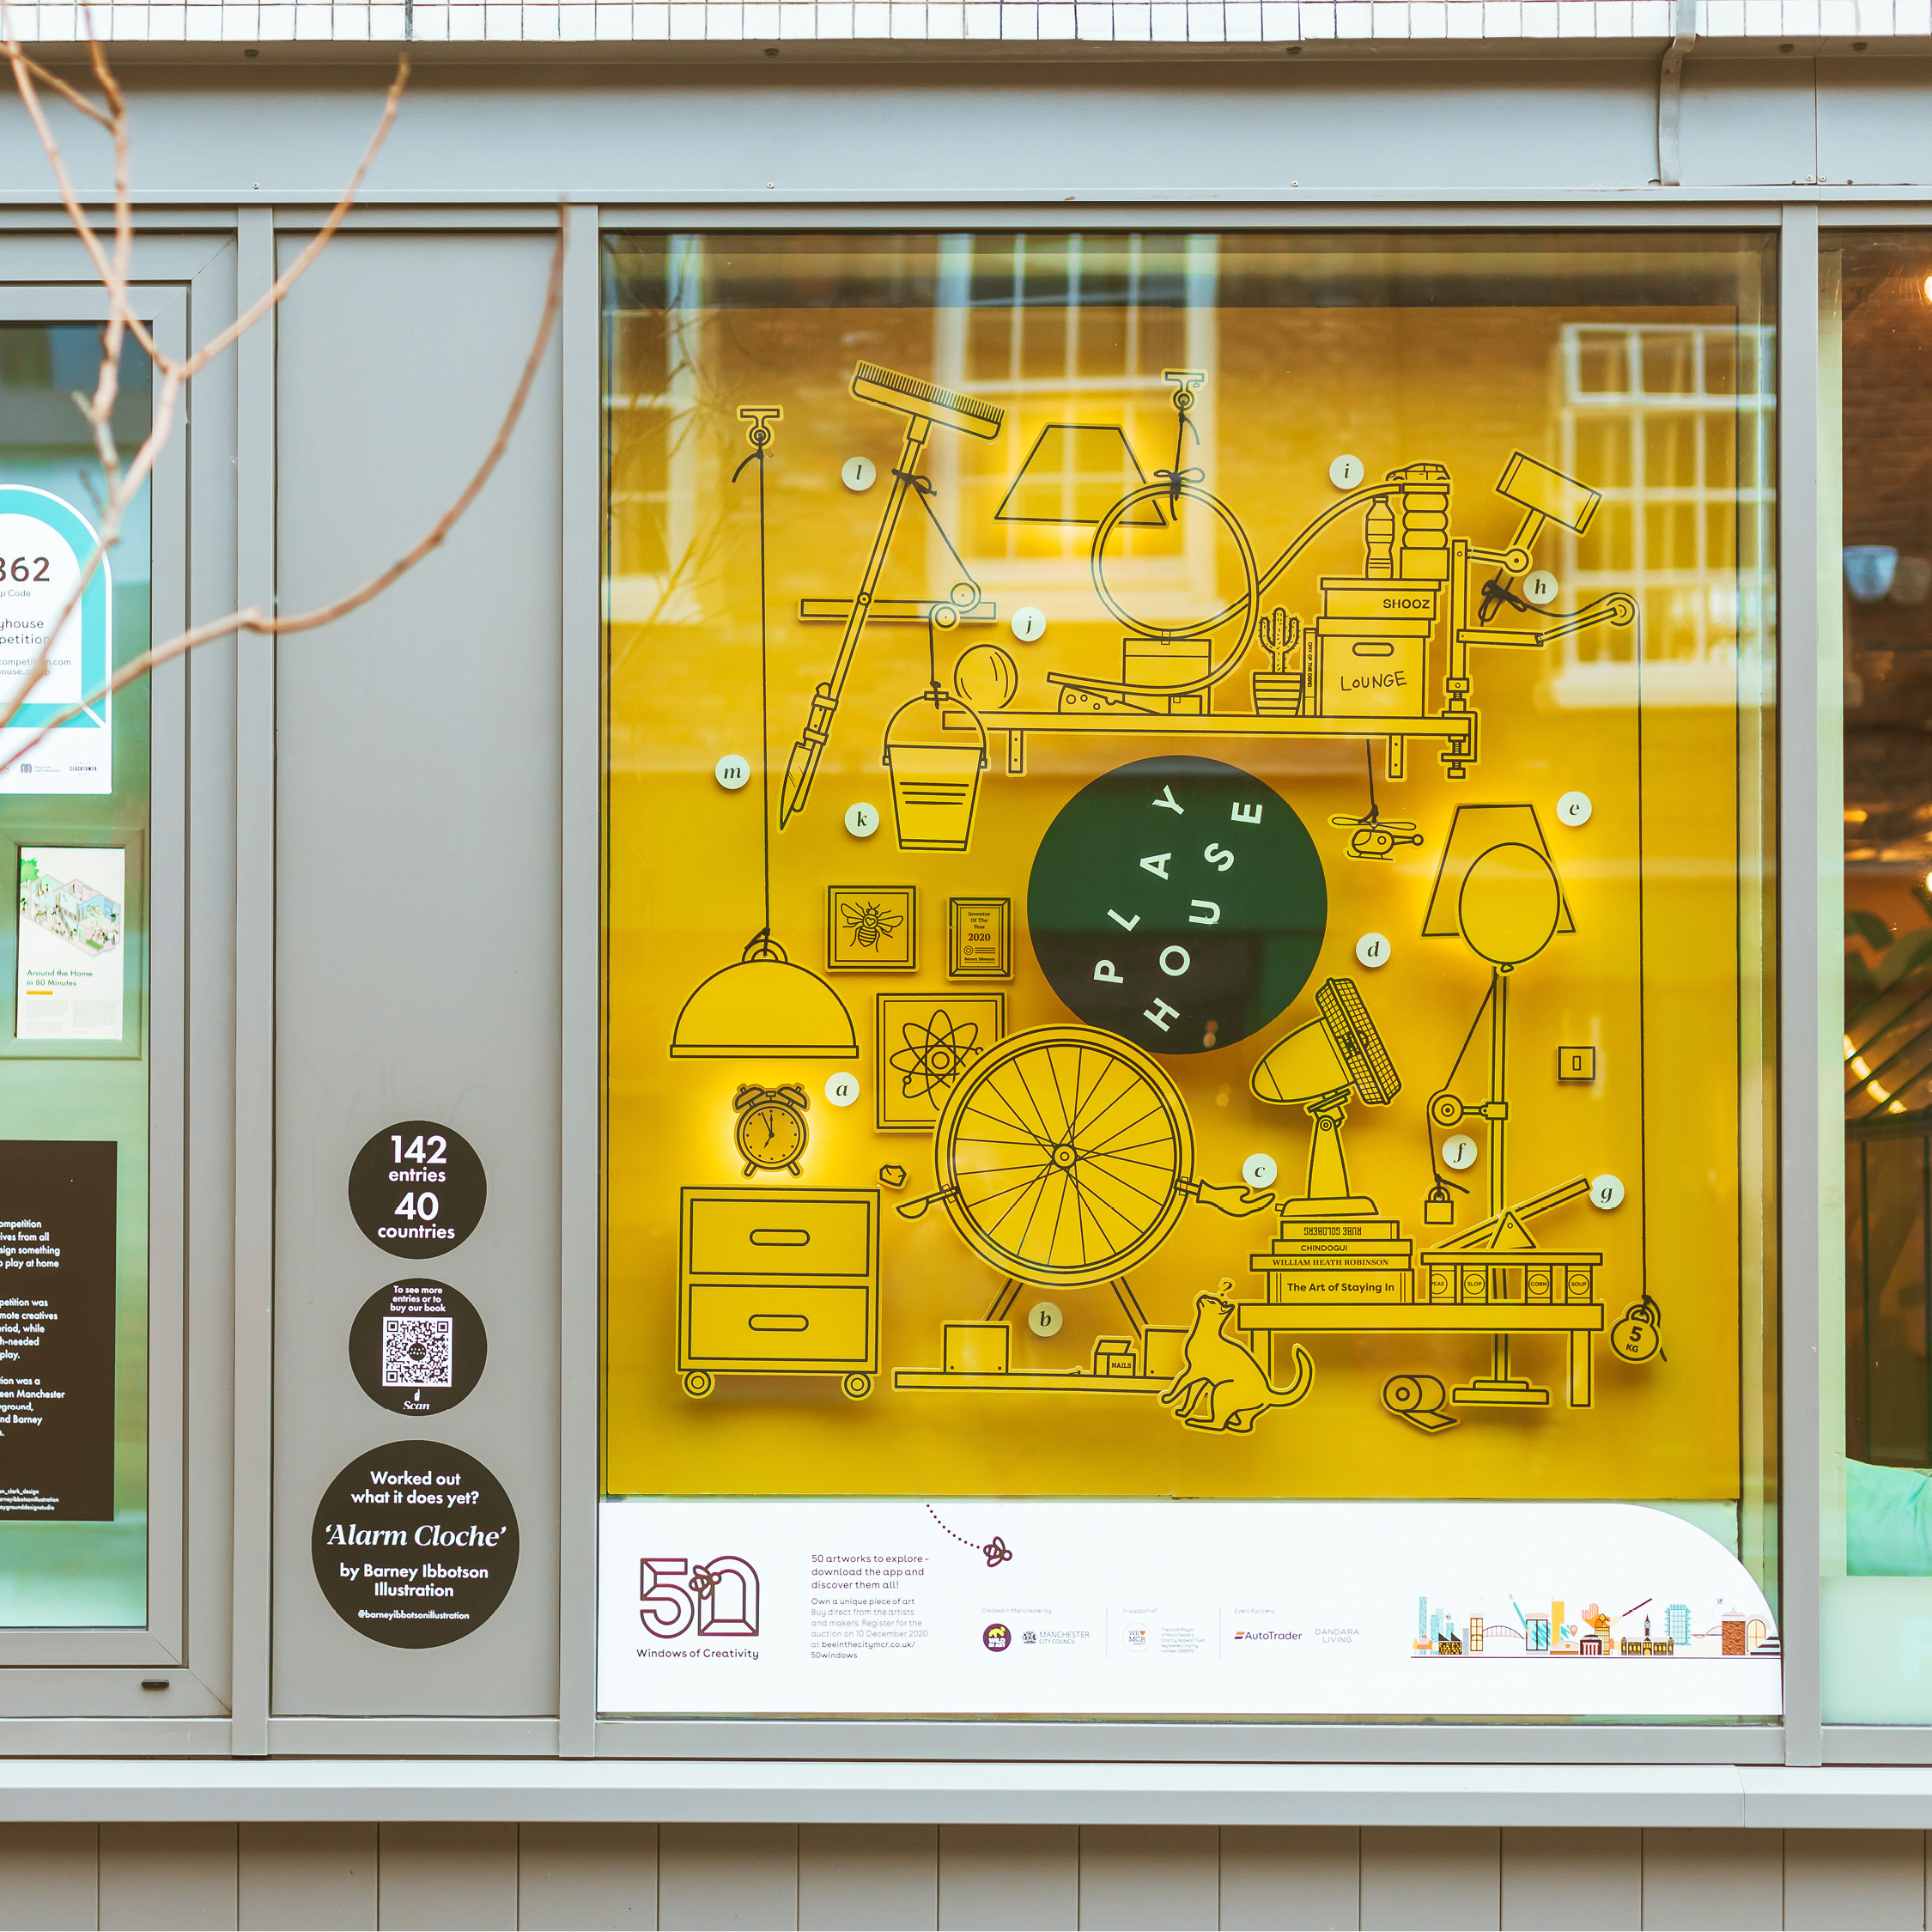 Playhouse design competition window as part of Windows of Creativity in Manchester